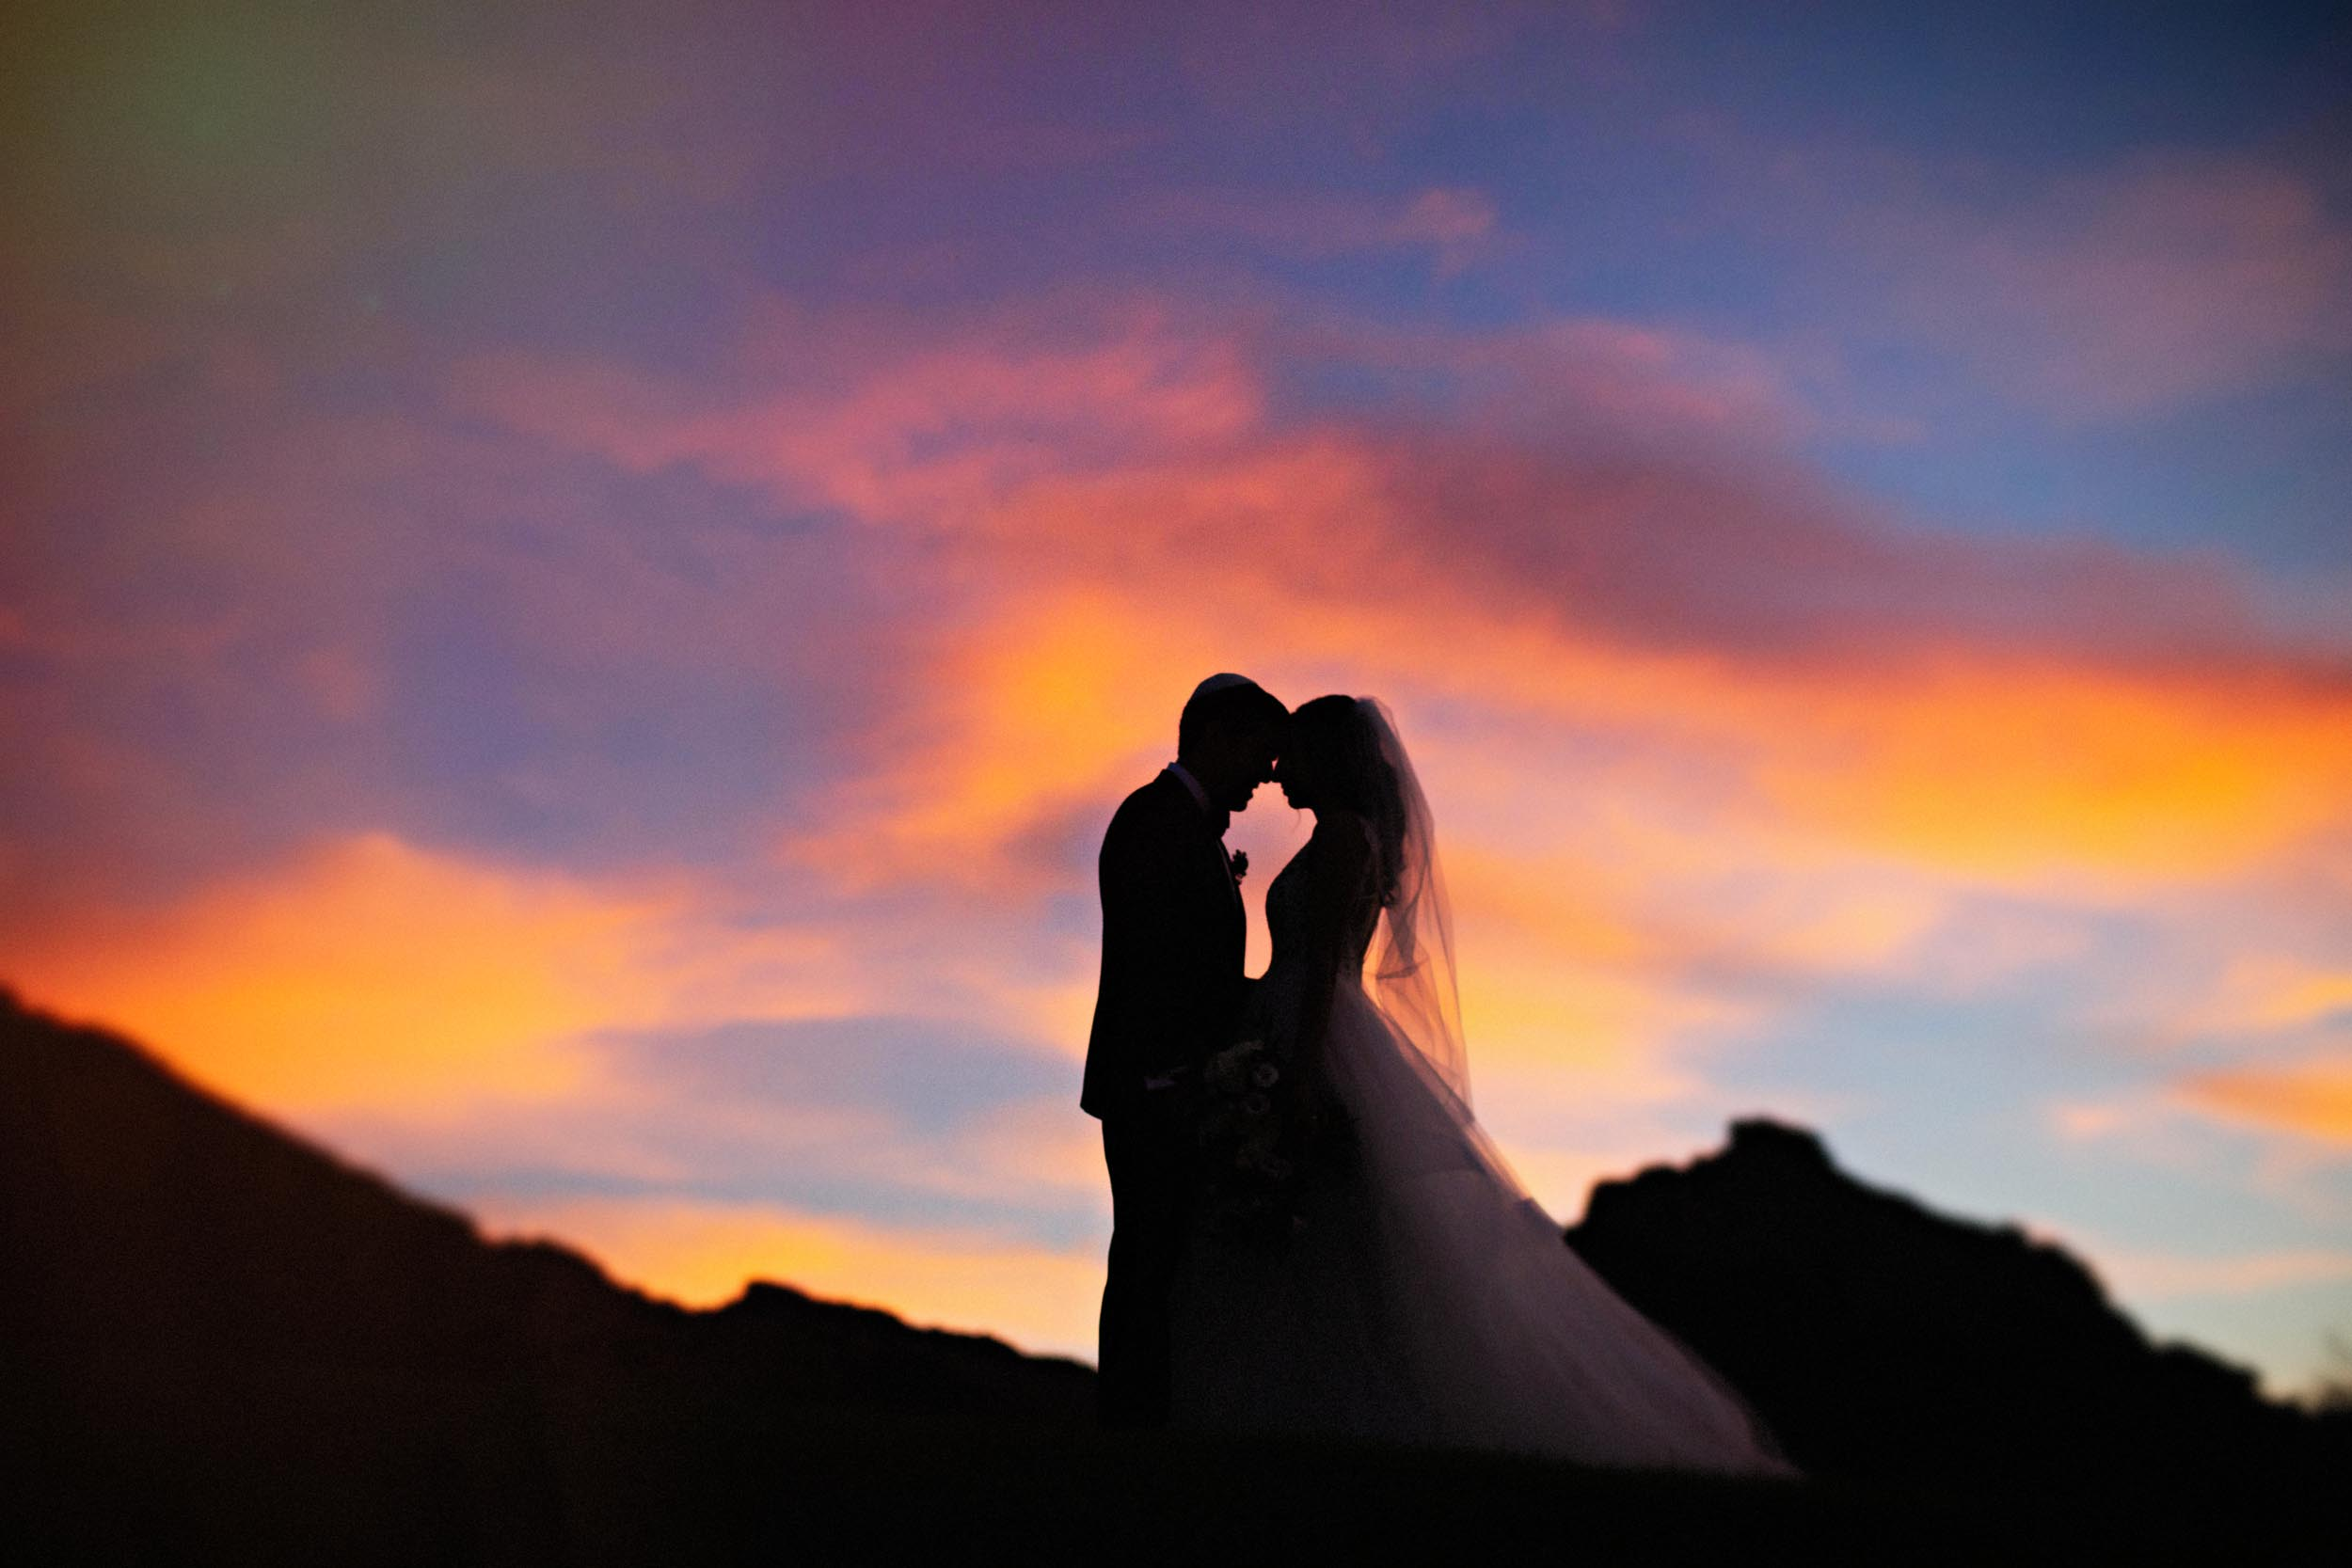 weddings-mountainshadows27.jpg